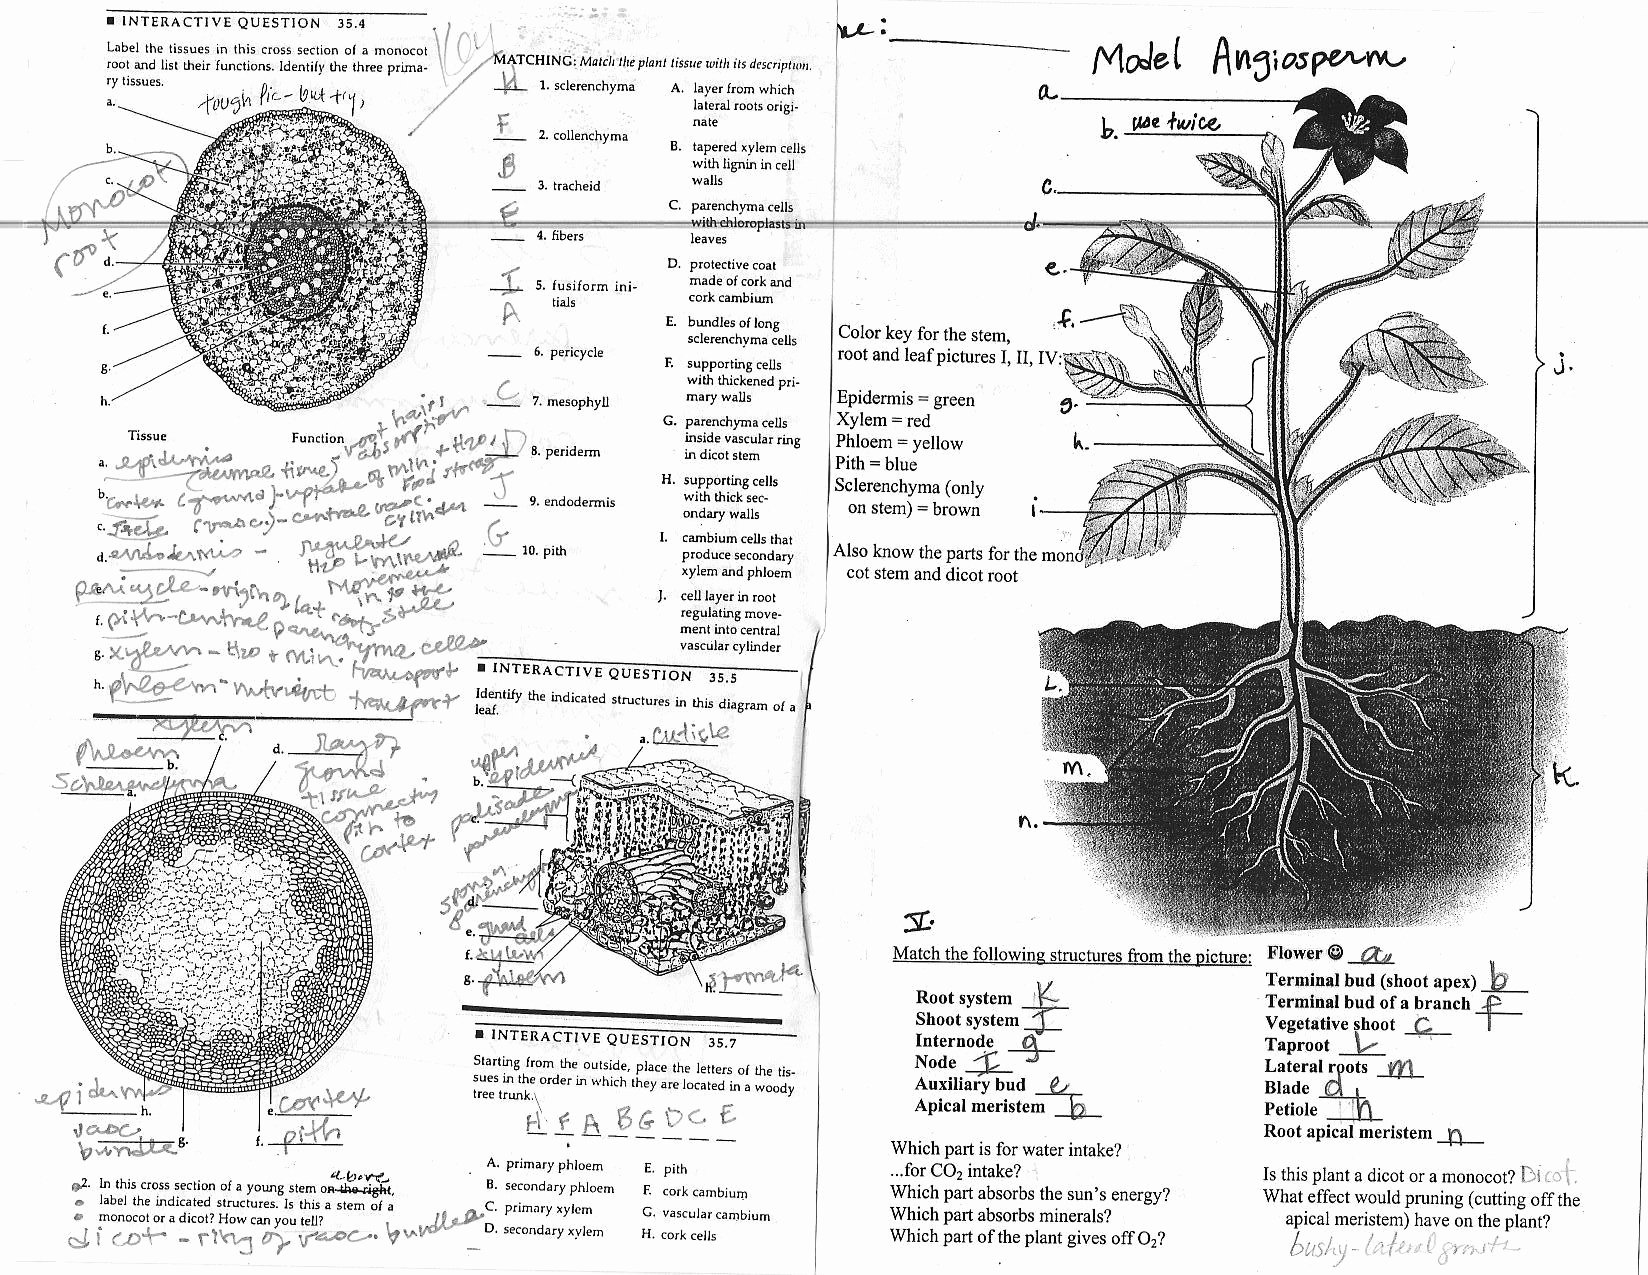 Plant Parts and Functions Worksheet Best Of 49 Plant Structure and Function Worksheet 14 Best